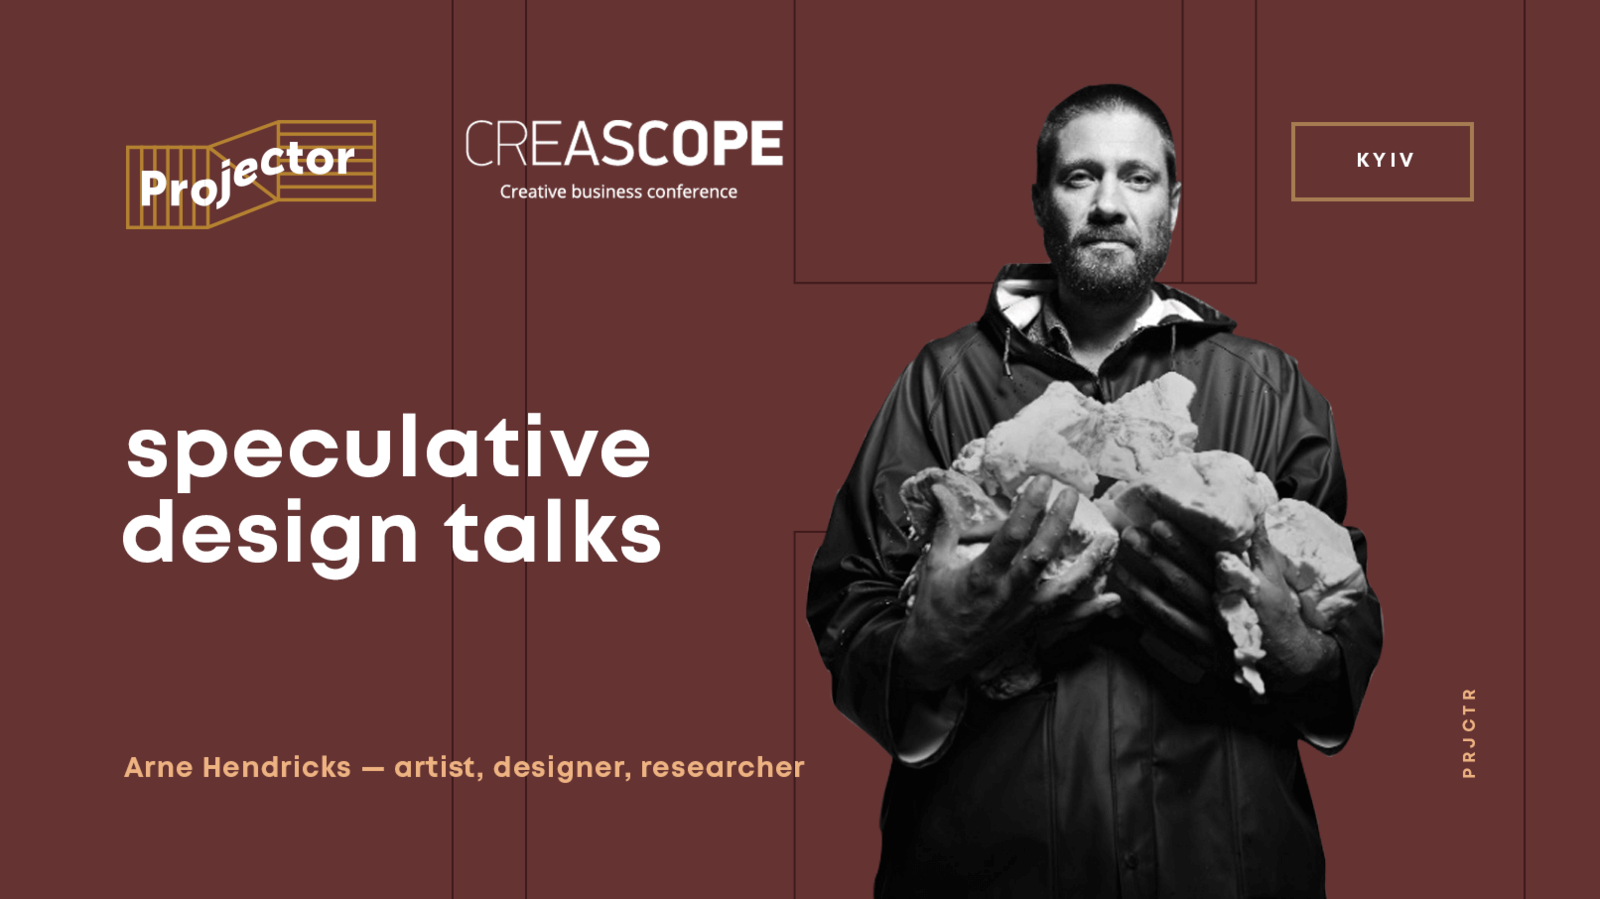 Speculative design talks